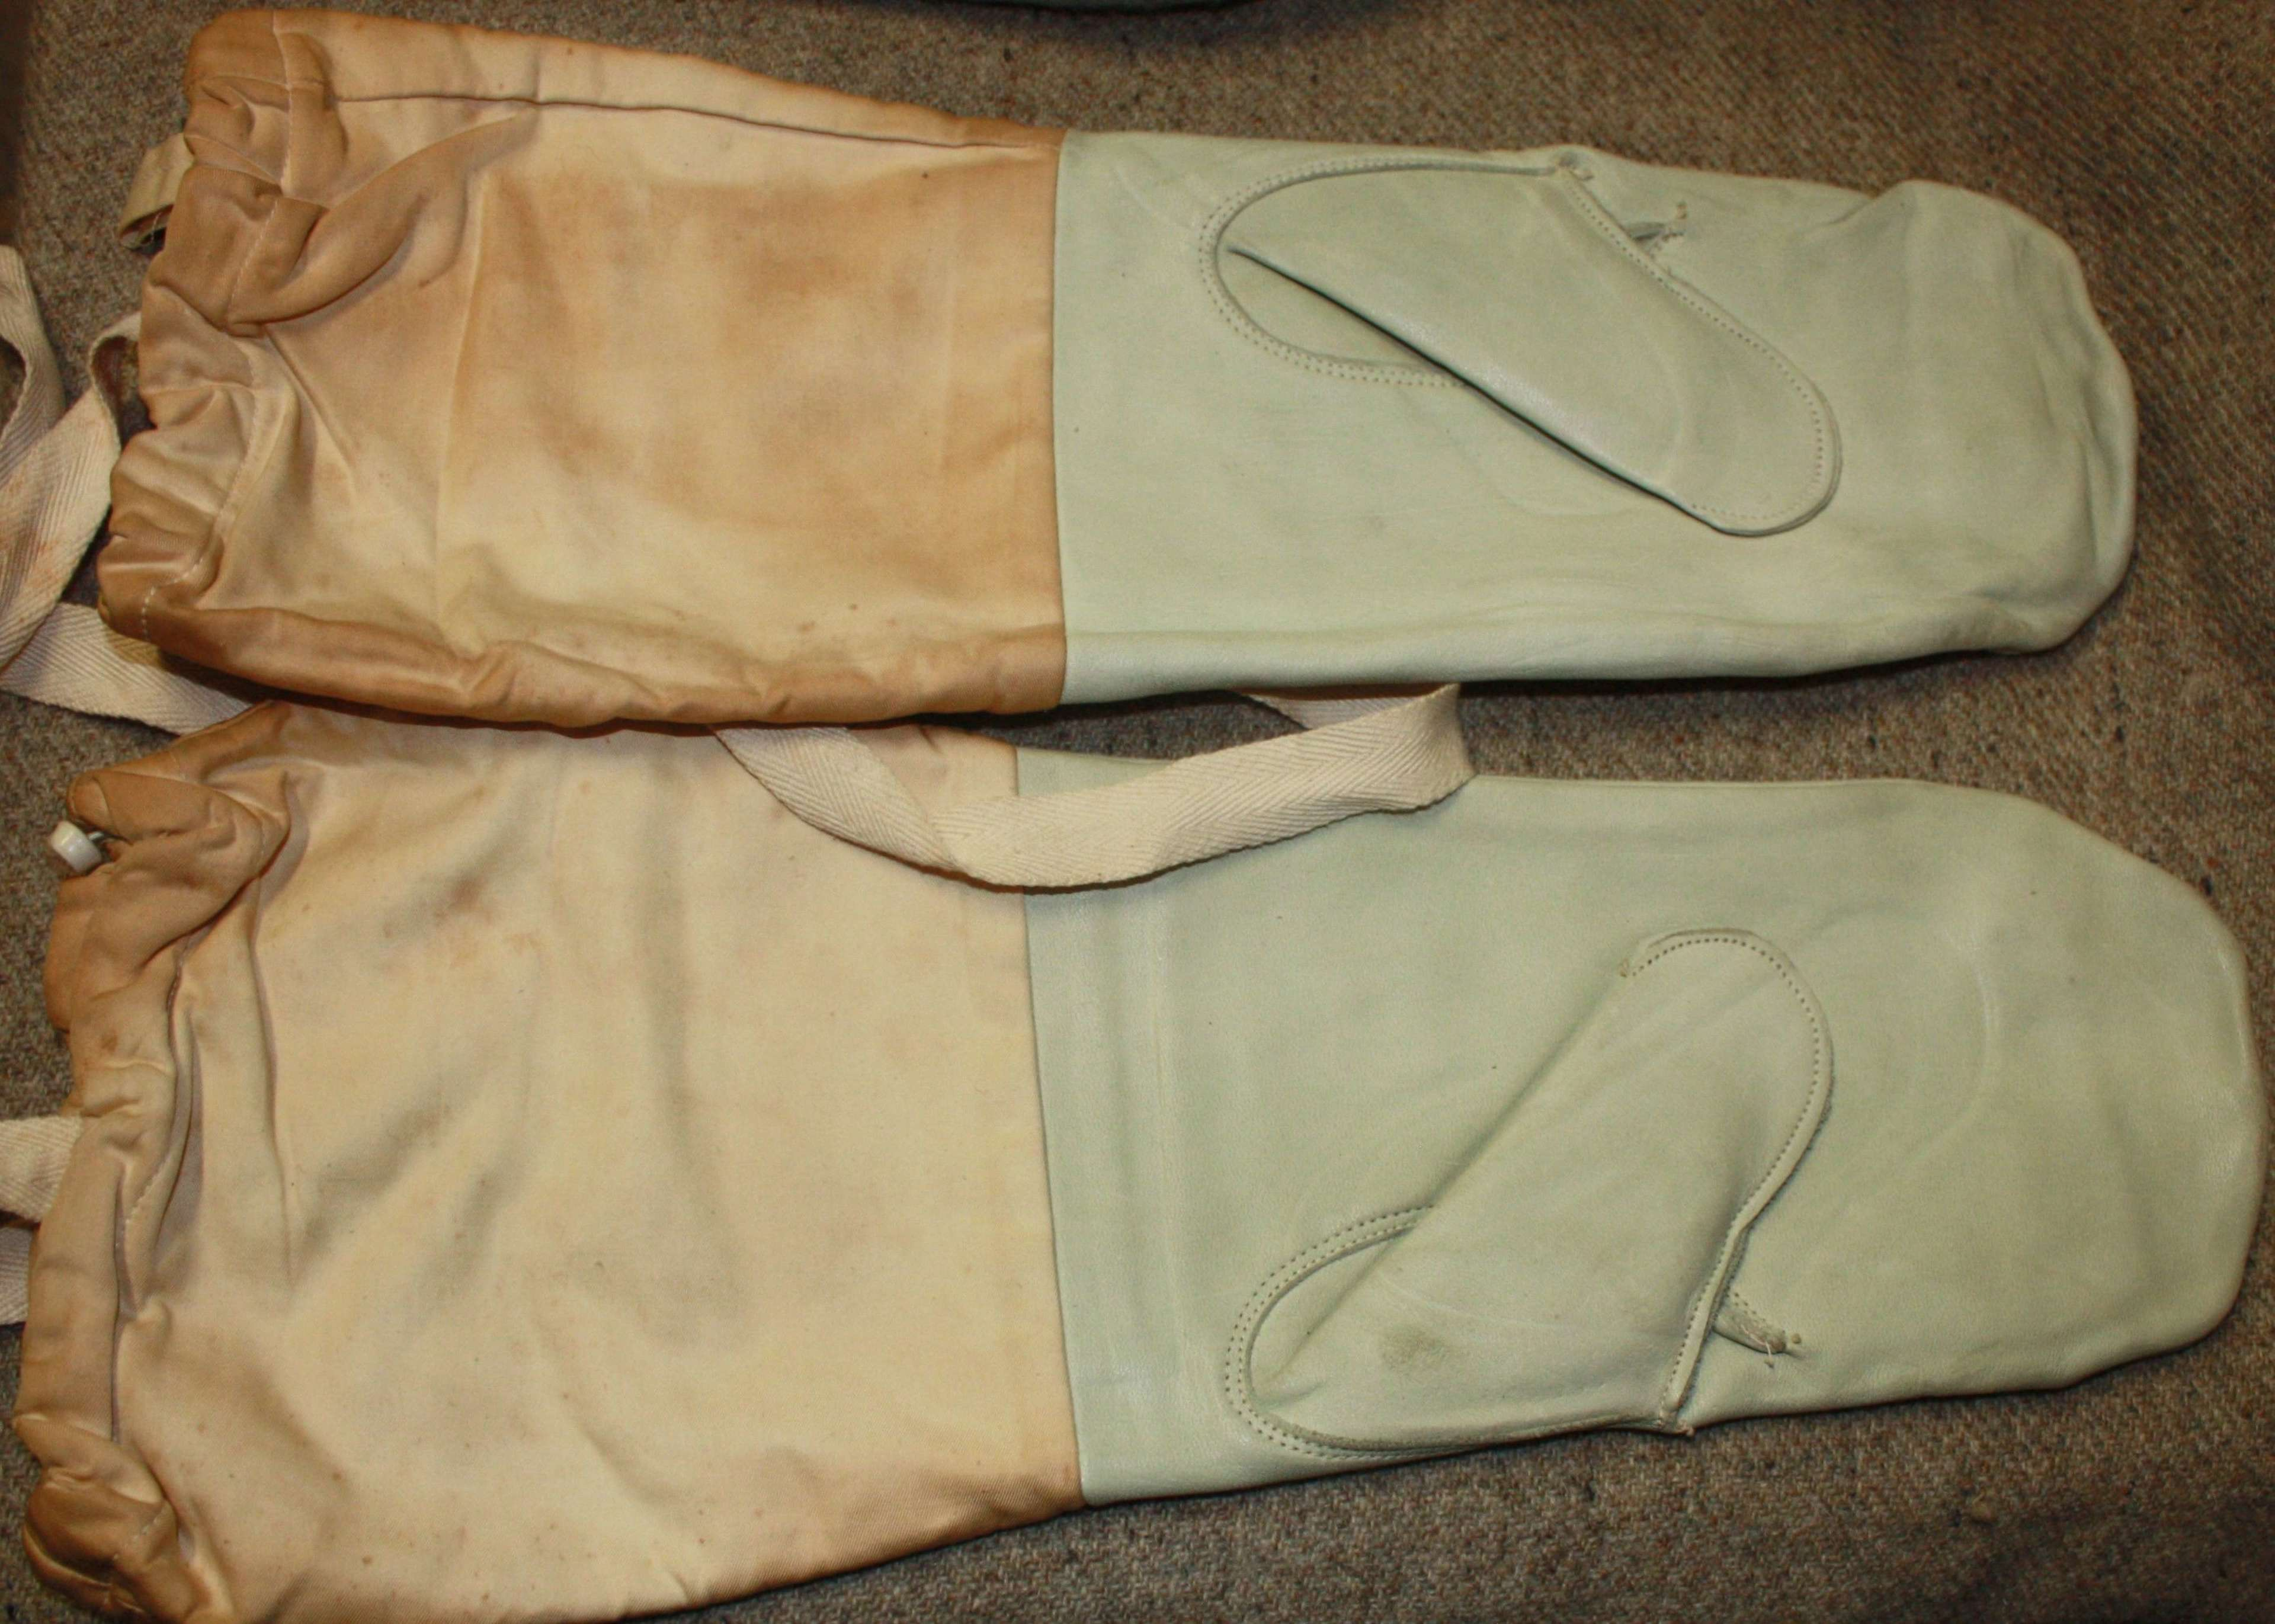 A PAIR OF 1941 SNOW MITTENS AND THE GREY WOOL MITTENS